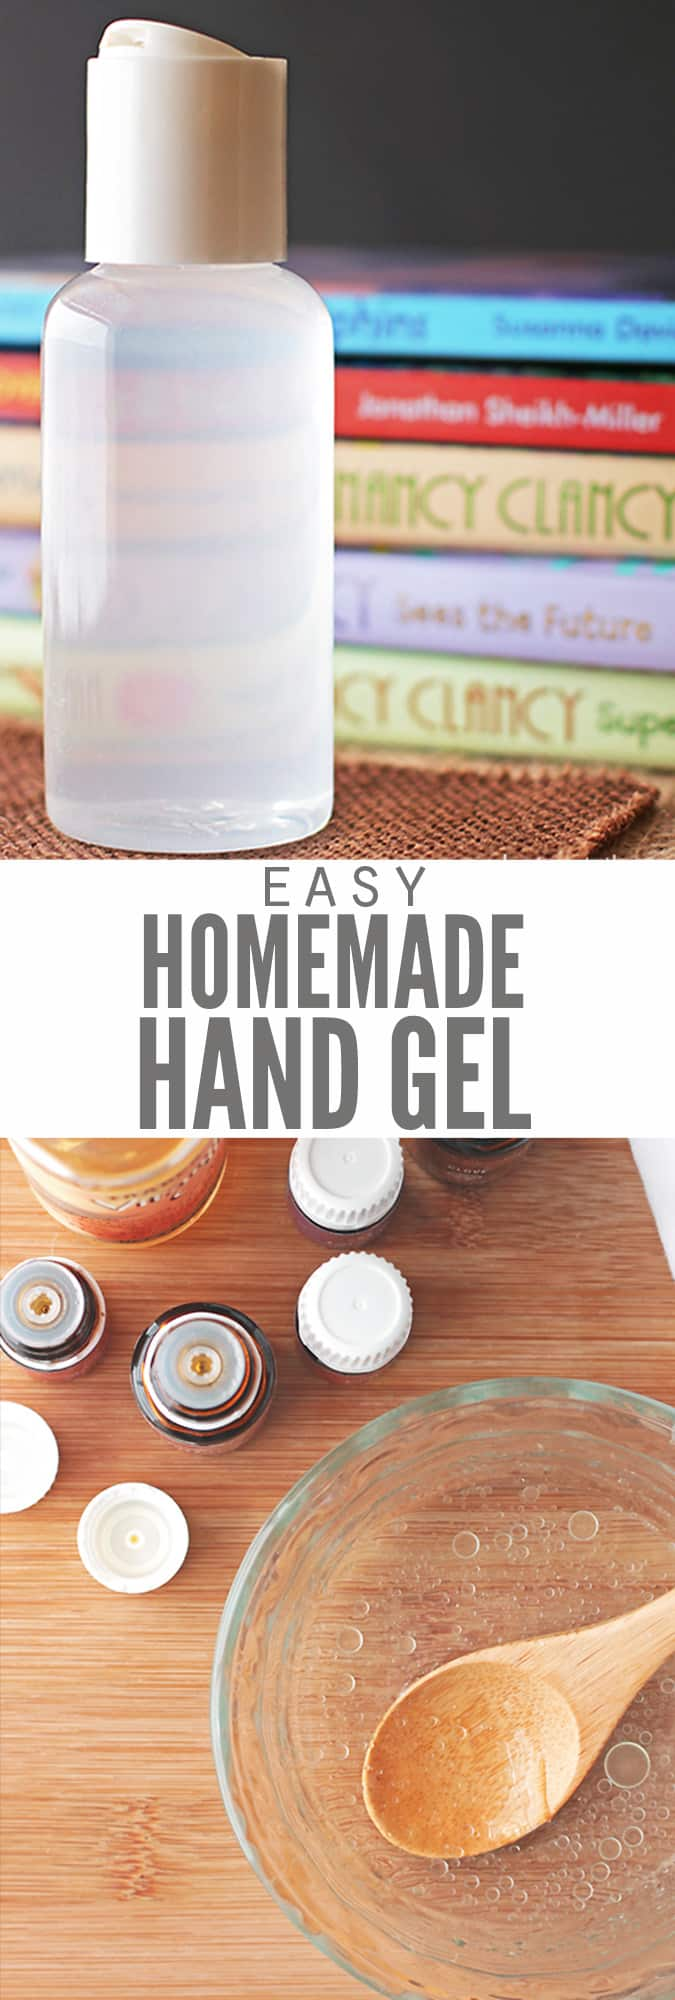 Try this easy and all-natural Homemade Hand Sanitizer recipe using vodka, witch hazel, rubbing alcohol and/or essential oils. Perfect as a gel or a spray! For more chemical-free options to keep hands and surfaces clean, try our tutorials on How to Make Thieves Foaming Hand Soap and our DIY All-Purpose Cleaner!